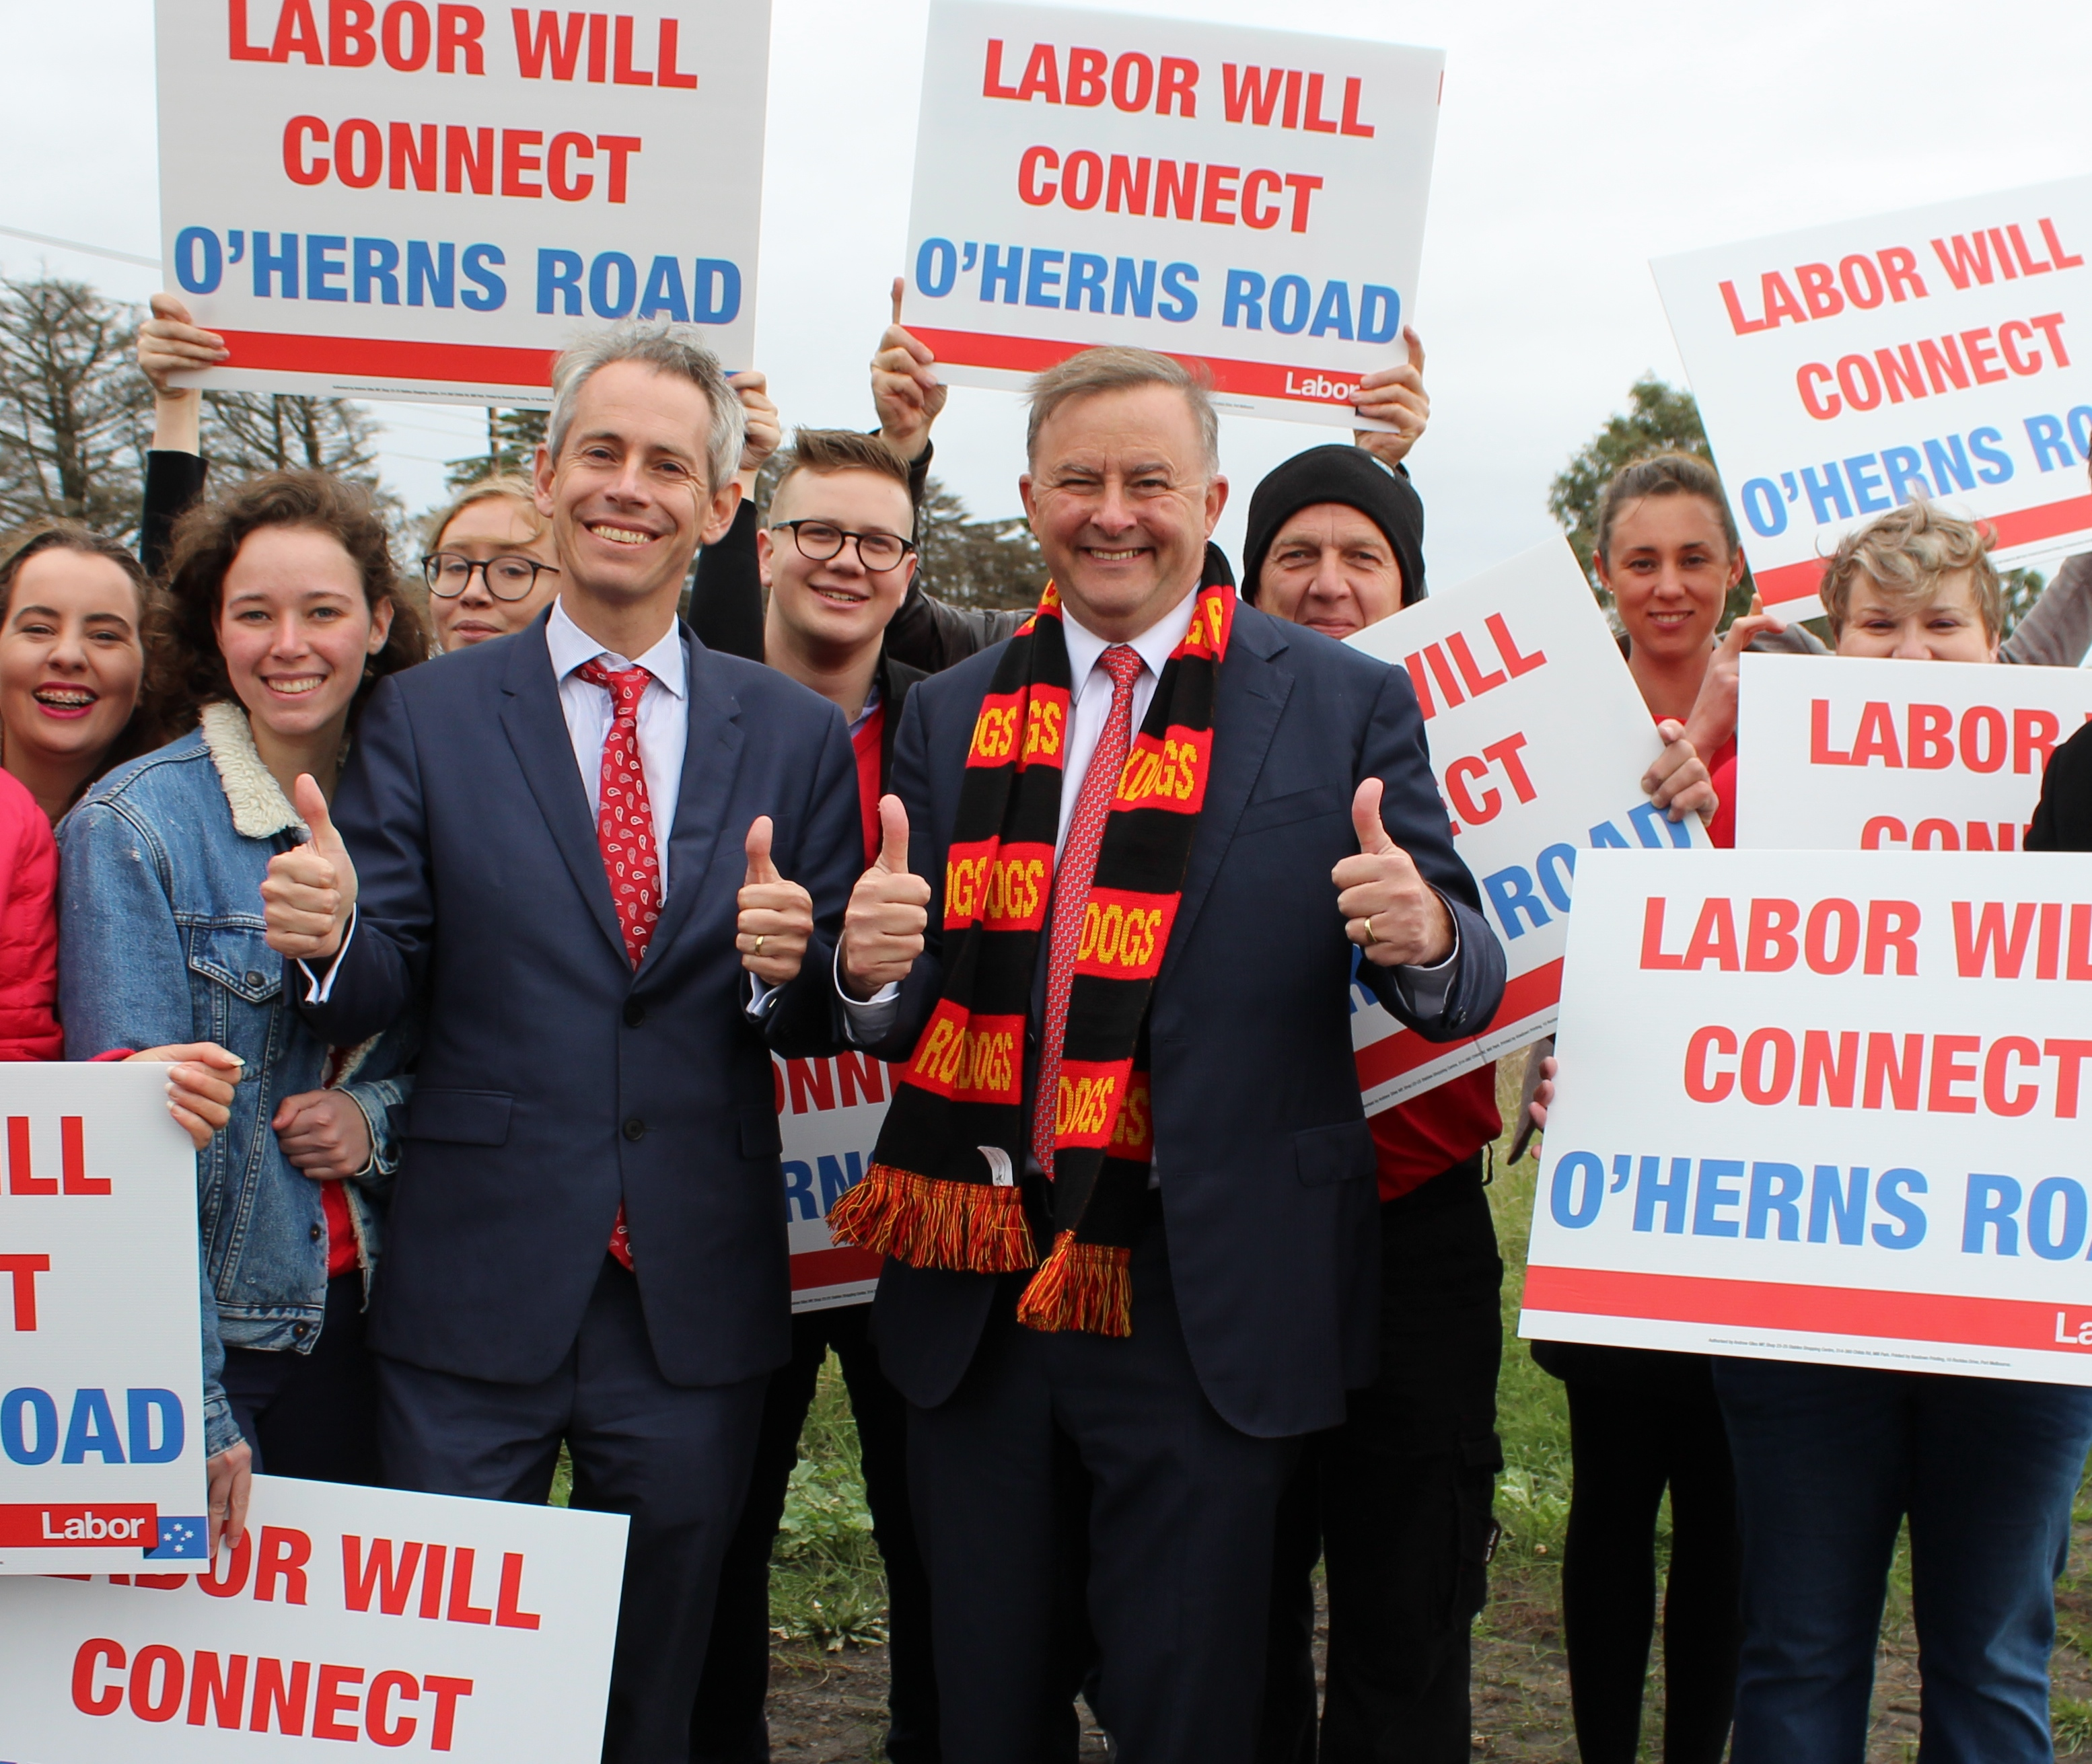 AG_with_Albo_Labor_will_connect_oherns_rd.jpg